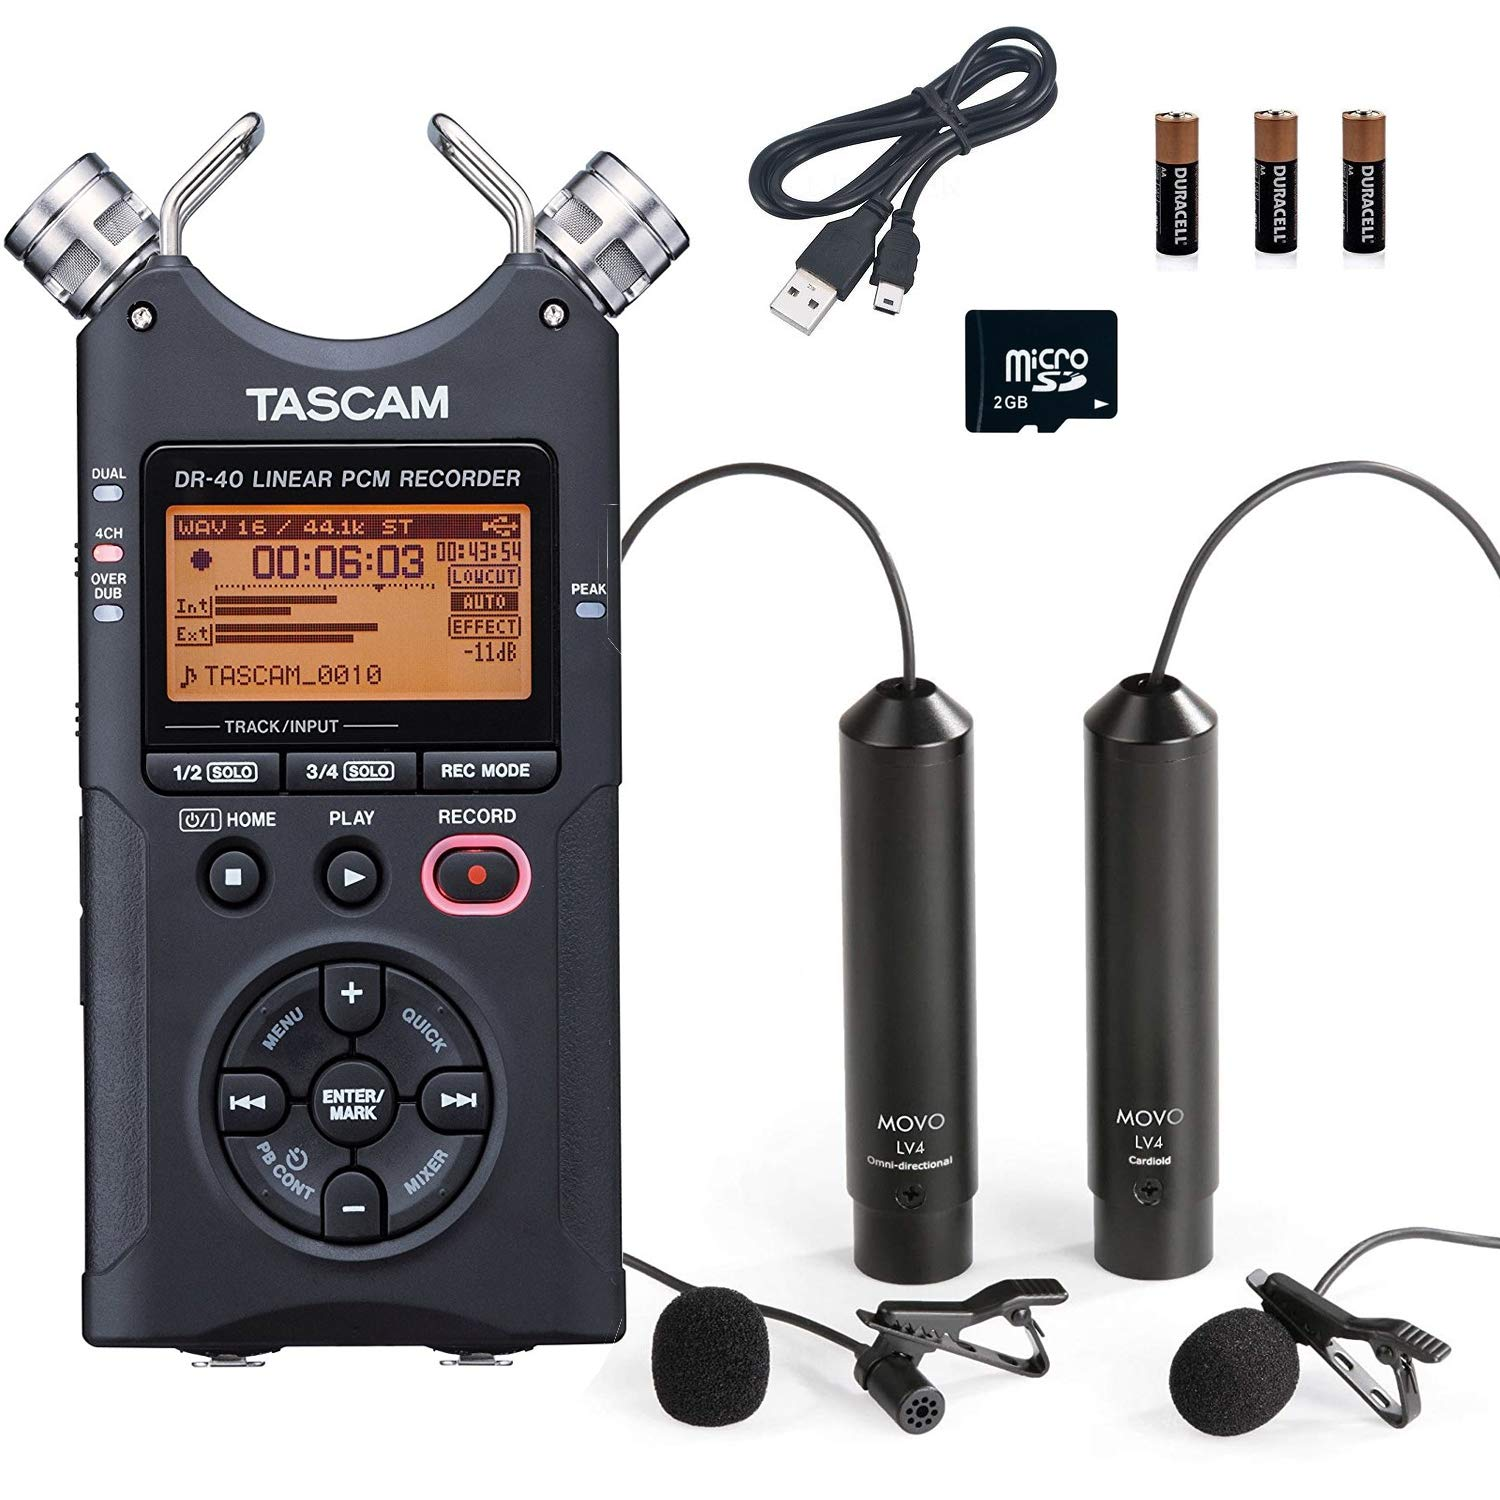 Tascam DR-40 4-Track Handheld Digital Audio Recorder Bundle with Movo Omnidirectional and Cardioid XLR Lavalier Microphones